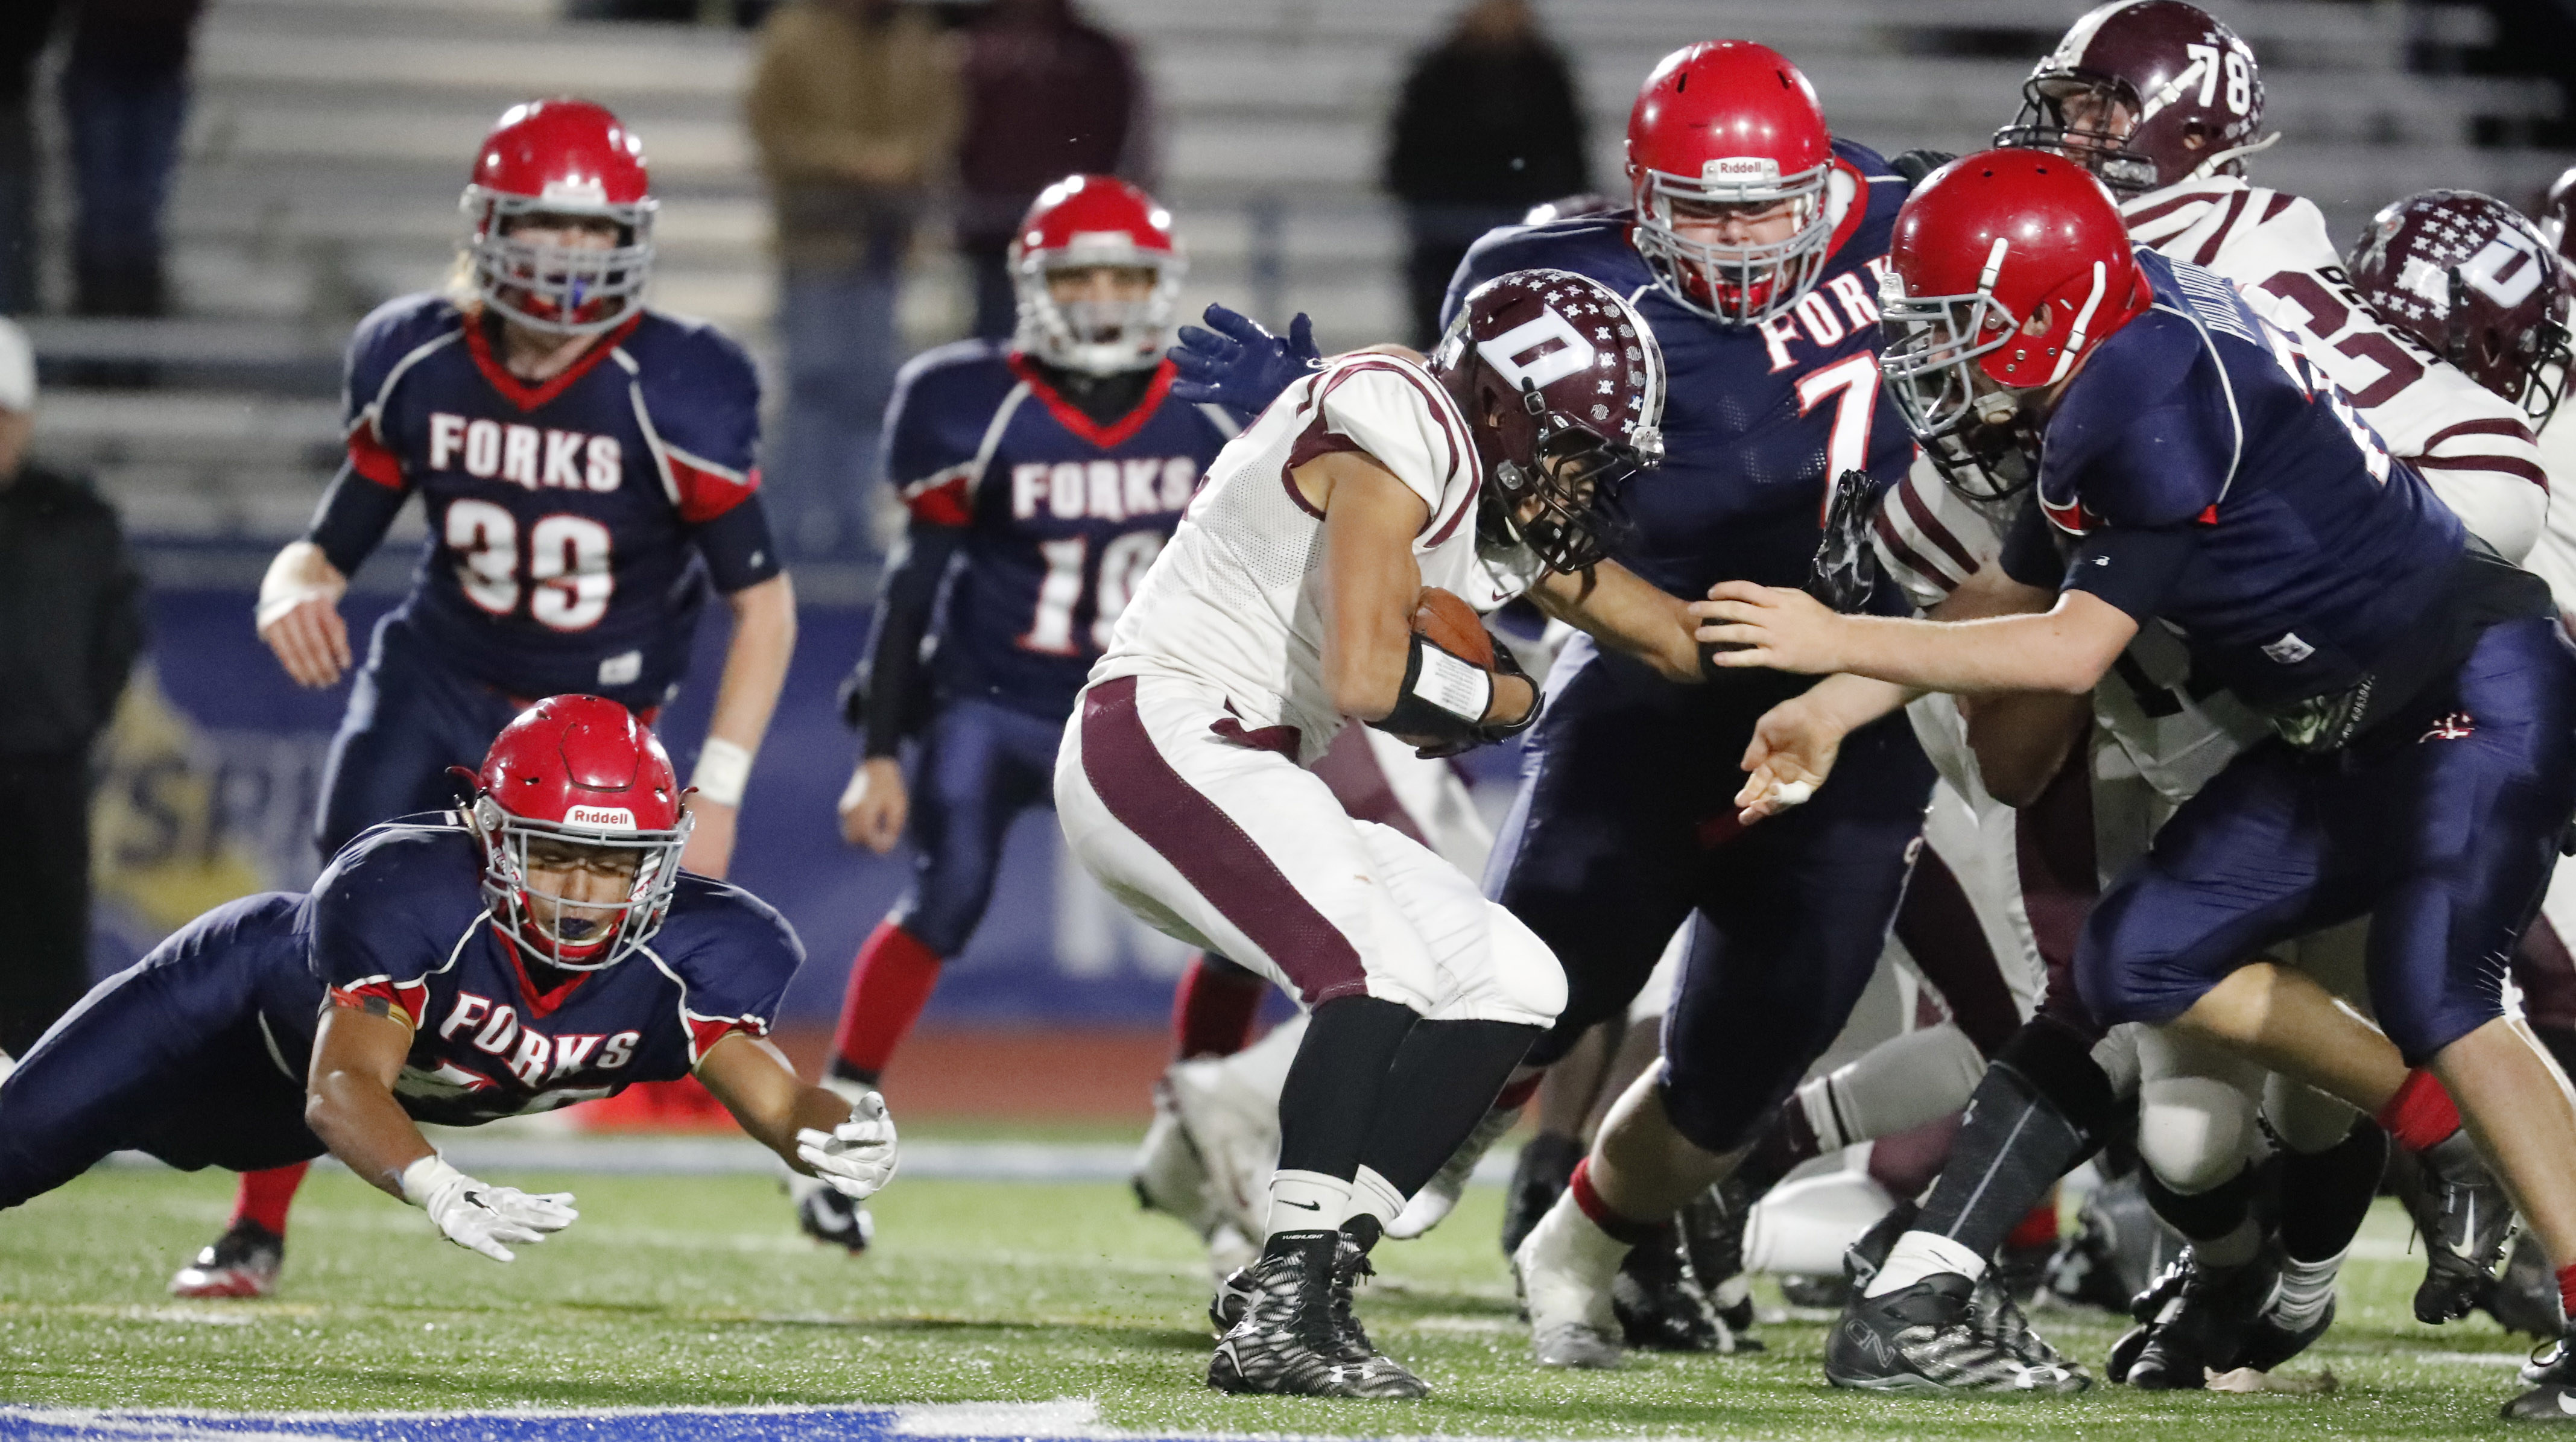 Dunkirk running back Alton Ingram didn't have much running room against a stout Chenango Forks defense. (Harry Scull Jr./Buffalo News)